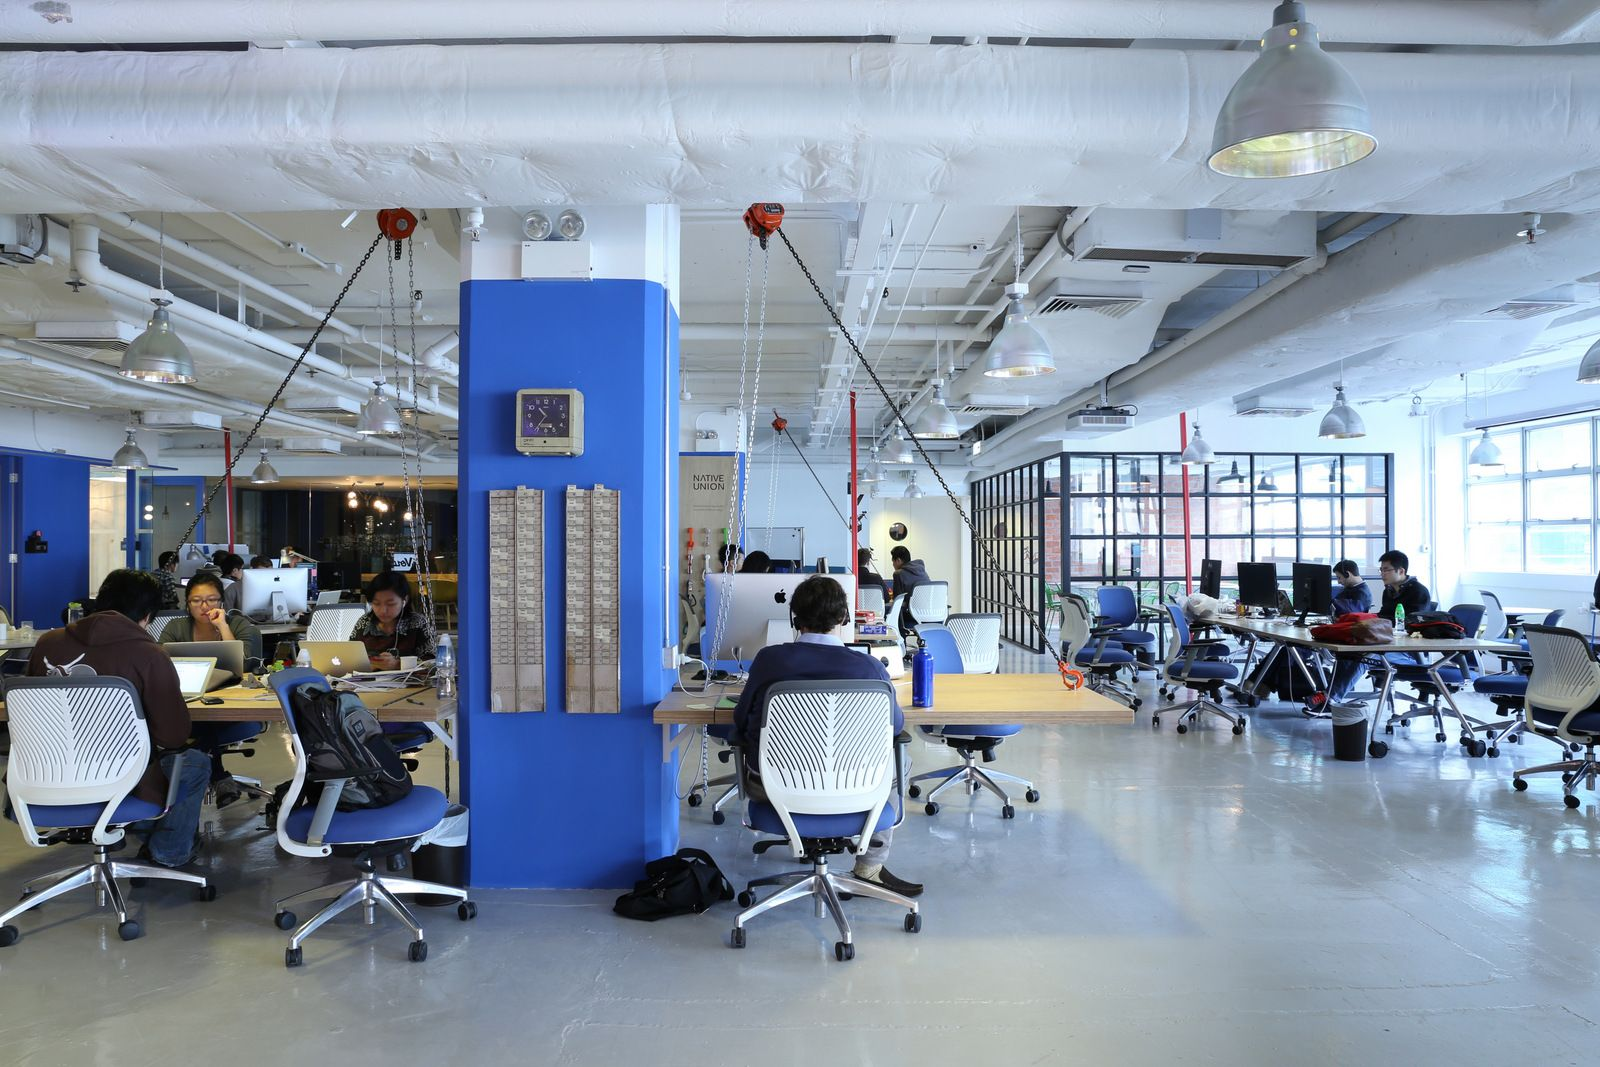 Blueprint hong kong coworking offices office pinterest pdm international has designed a new office space for blueprint a tech focused coworking office located in hong kong as a tech focused co working communi malvernweather Images